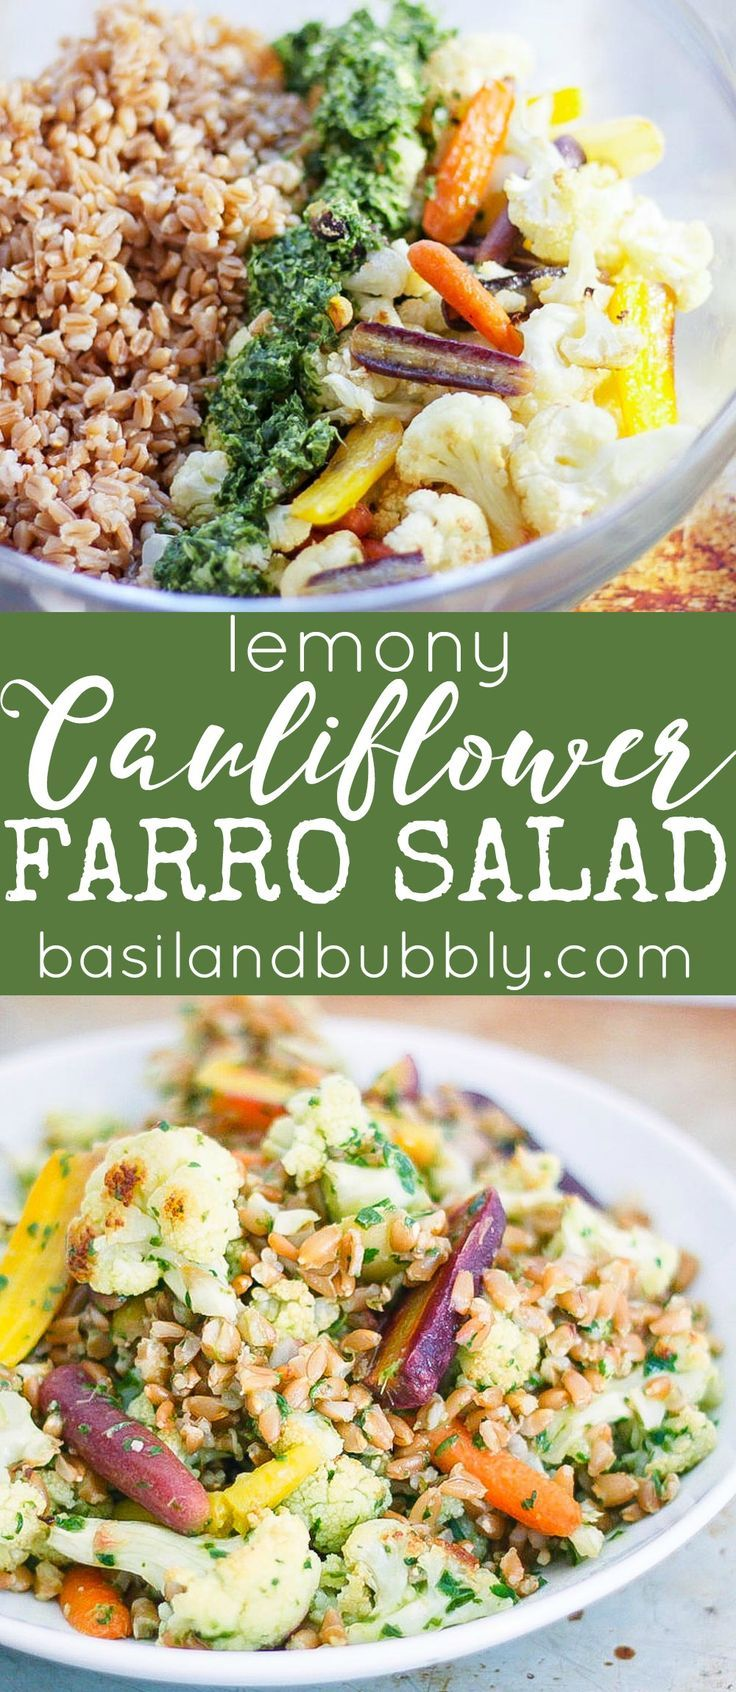 Lemony Basil, Carrot and Cauliflower Salad is my FAVORITE lunch to take to work.